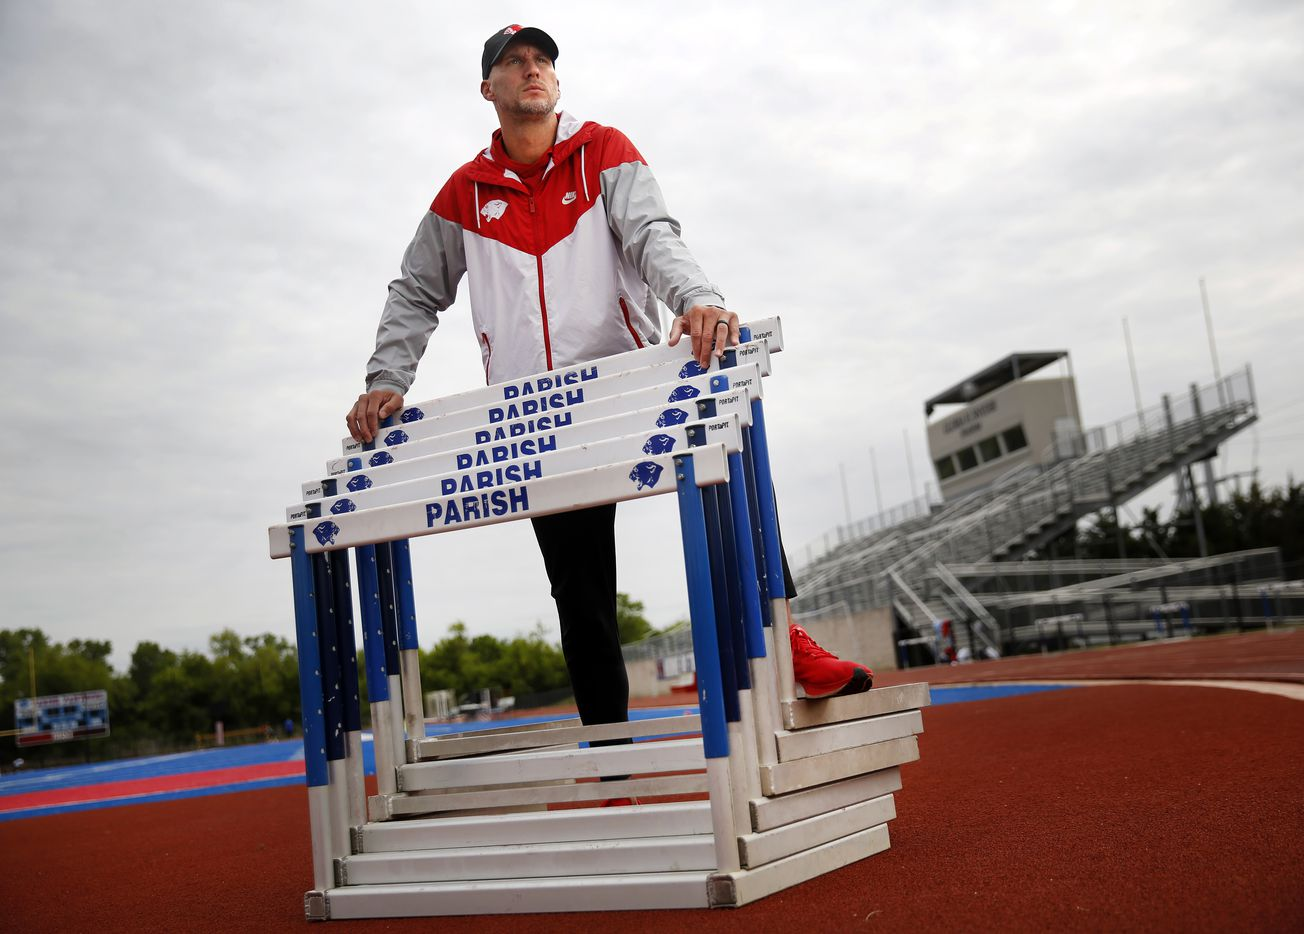 Parish Episcopal head track coach Jeremy Wariner poses for a photo at the schools stadium in Dallas, Wednesday, April 21, 2021.  The former Arlington Lamar and Baylor star who won three Olympic gold medals -- one in the 400 meters and two in the 4x400 relay, took over the program after retiring from competition. (Tom Fox/The Dallas Morning News)